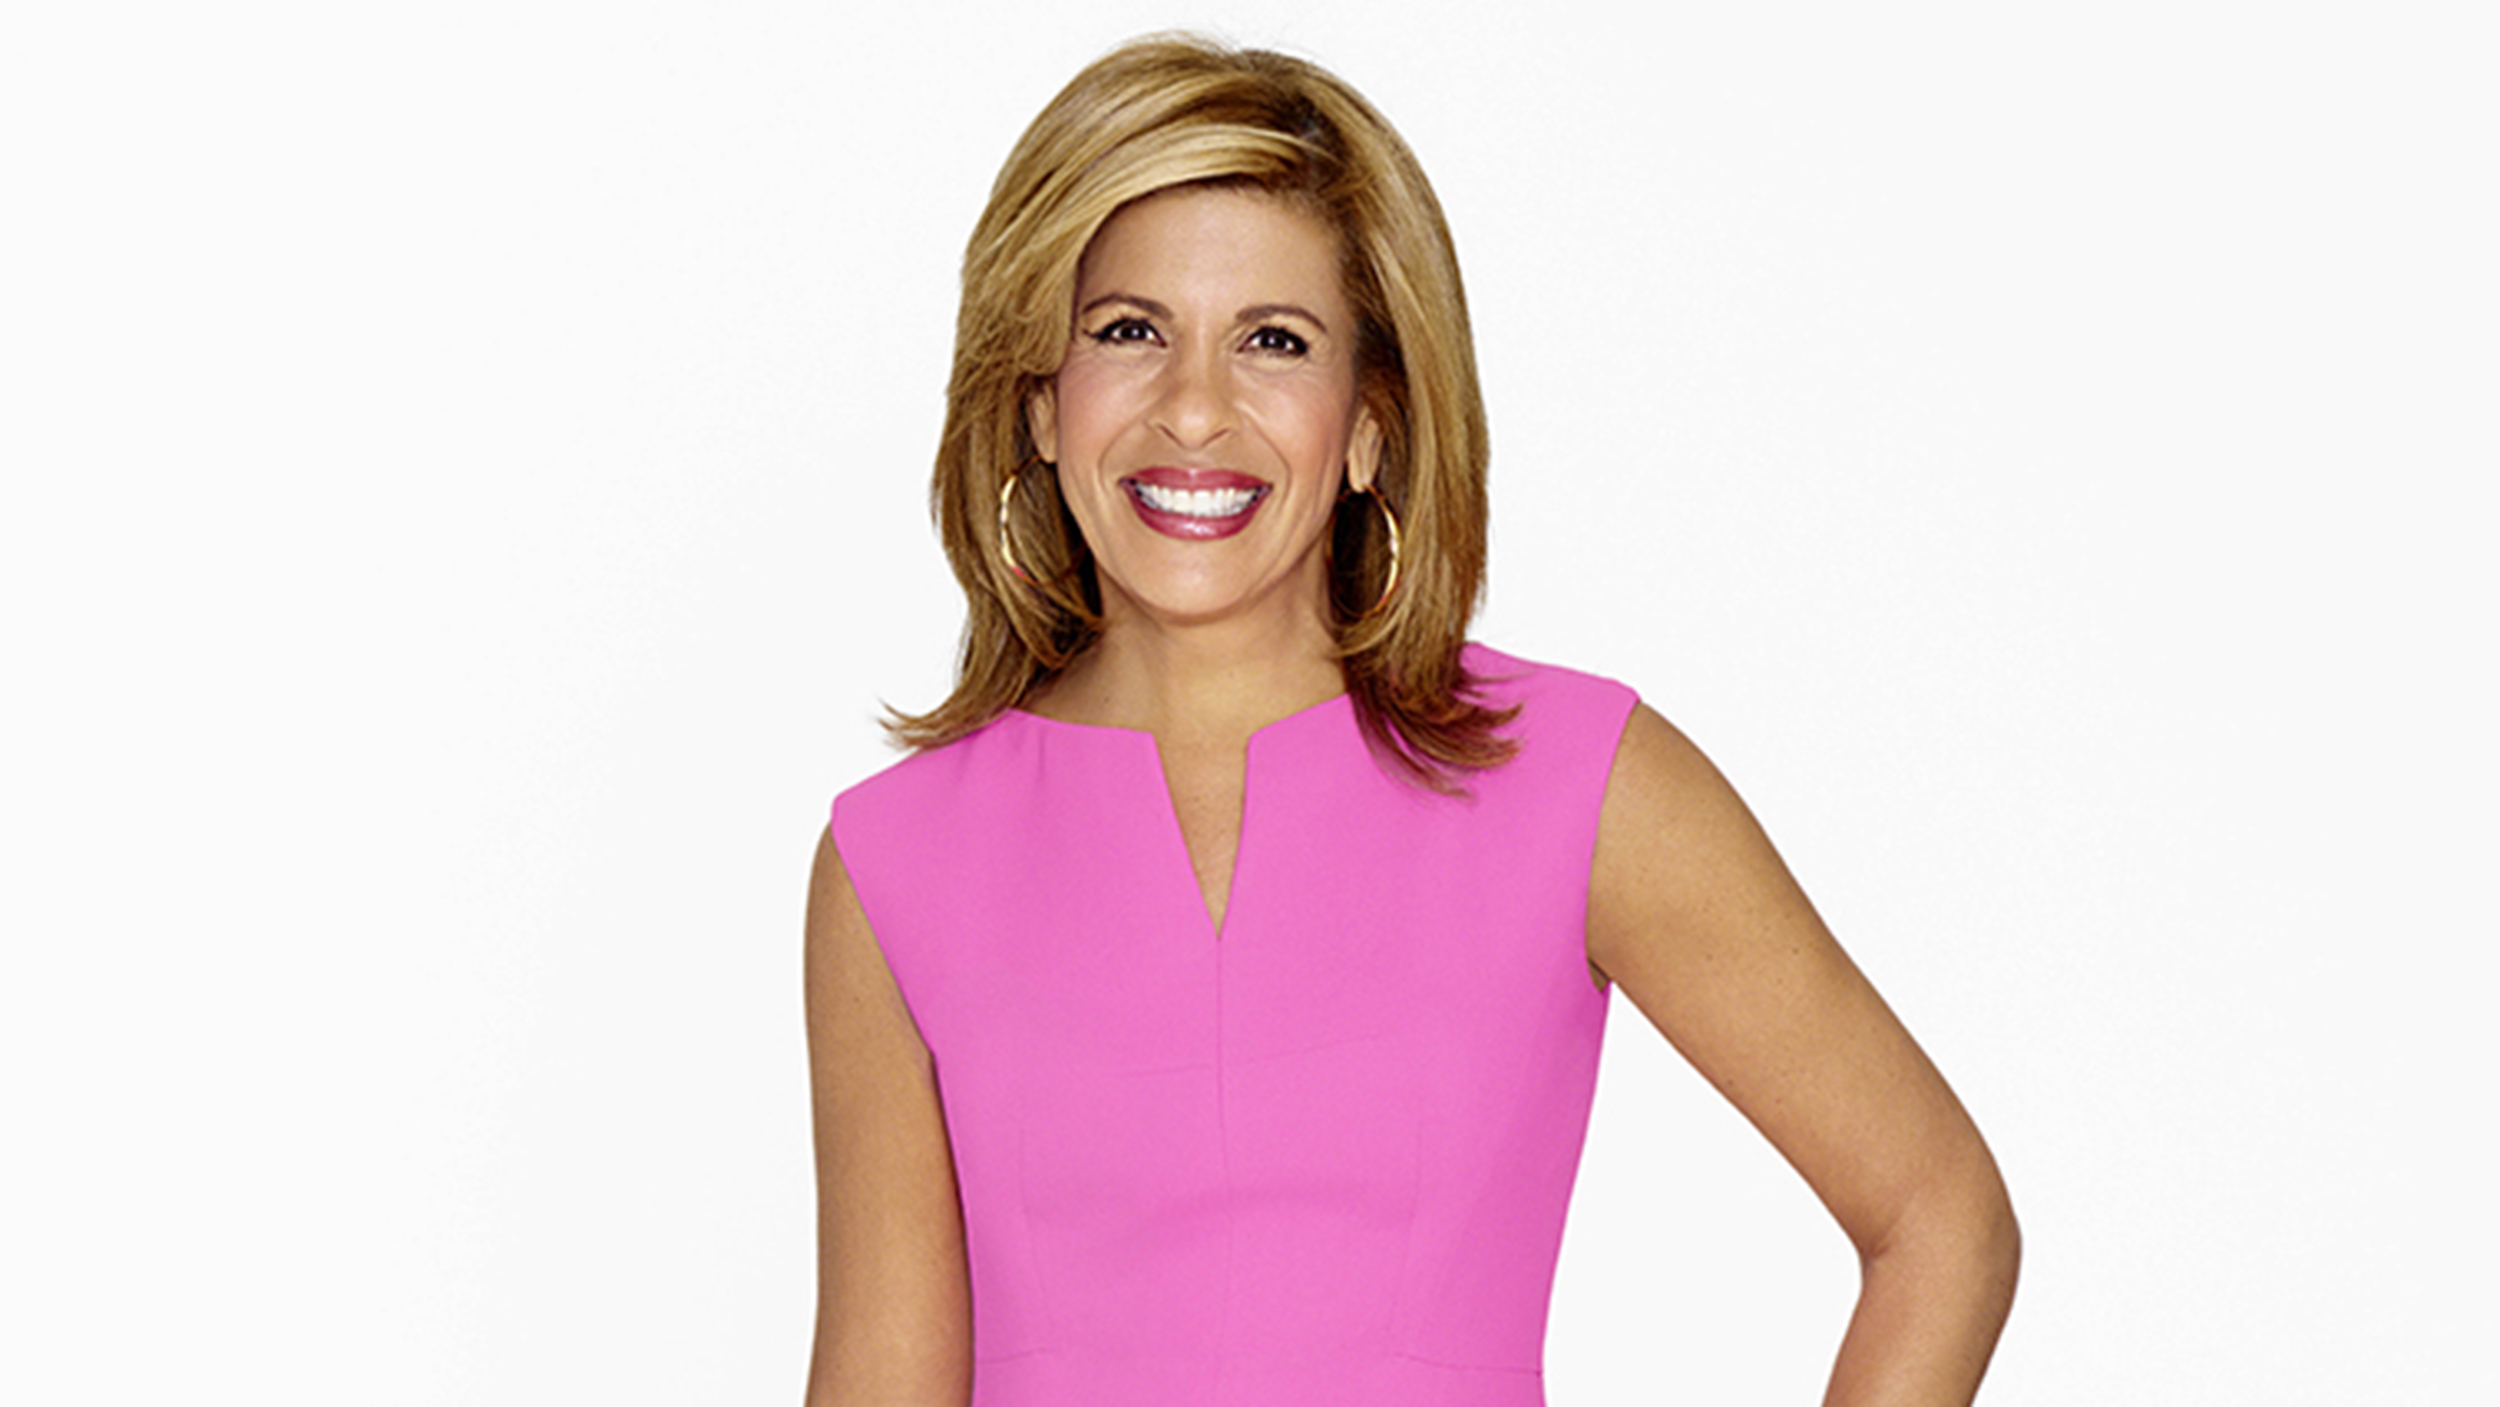 Hoda Kotb, Cohost Of Today's Fourth Hour  Todaycom. Colored Sinks Kitchen. Kitchen Countertops Concrete. Glass Kitchen Backsplash Pictures. Stone For Kitchen Floor. Measuring For Granite Kitchen Countertop. Kitchen Cabinets And Backsplash. New Kitchen Countertop Materials. Kitchen Countertops And Backsplash Pictures